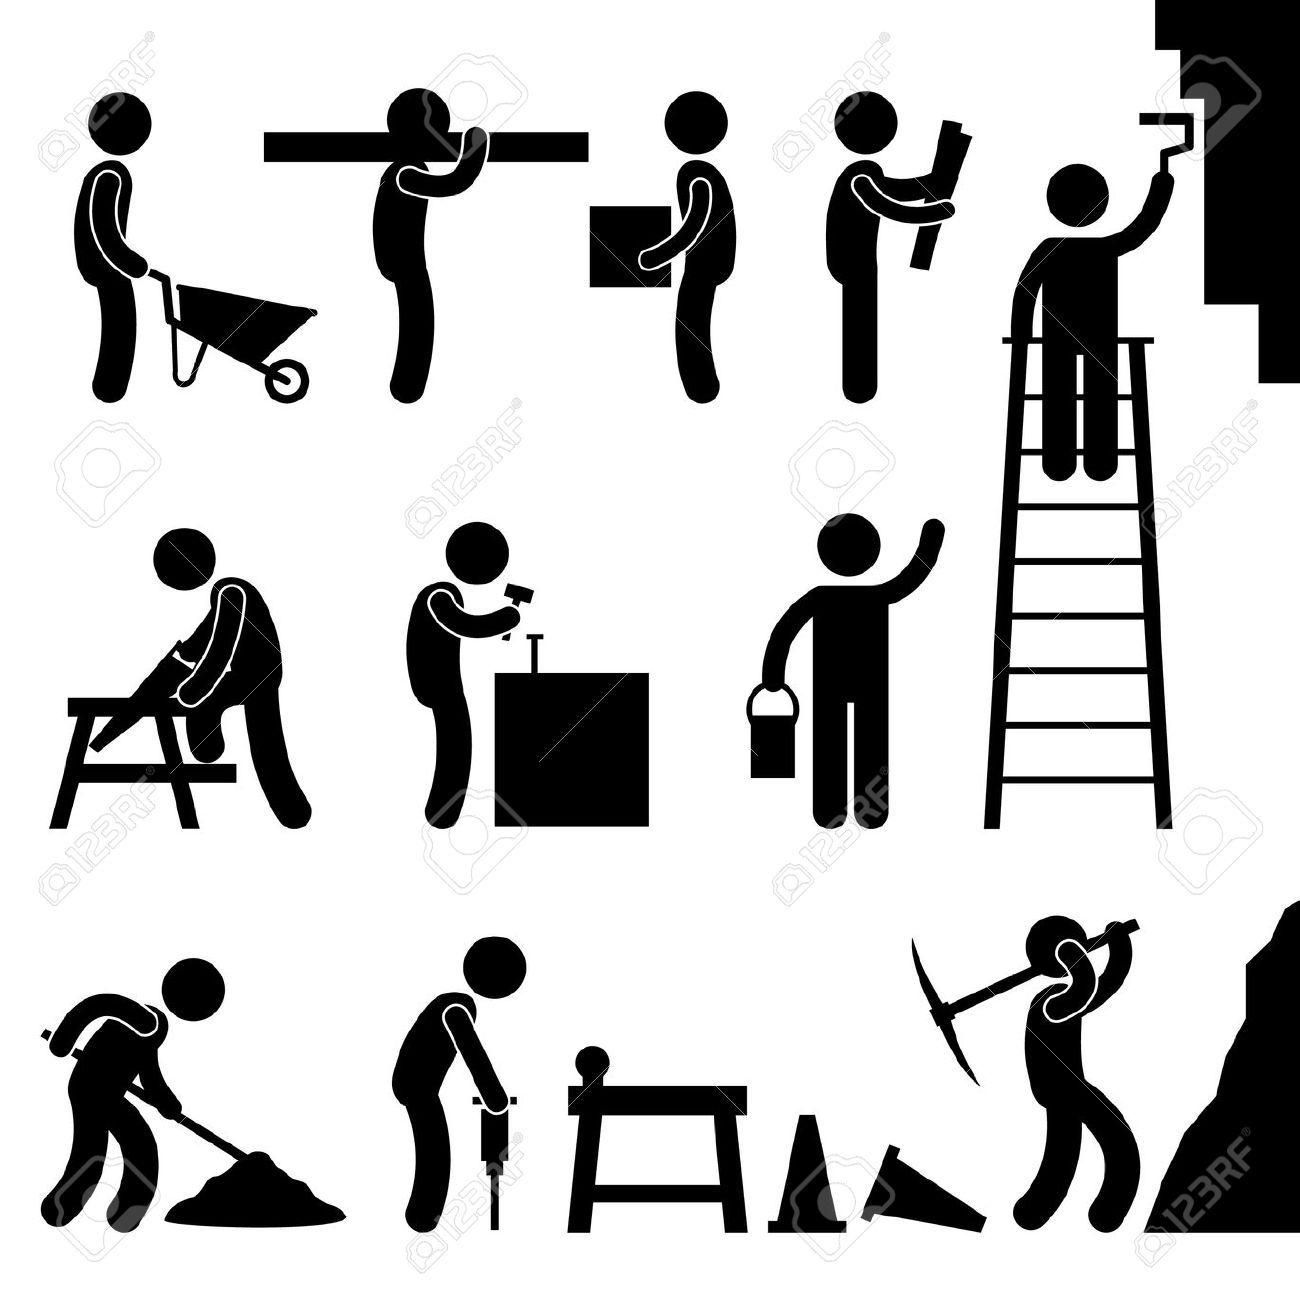 Man People Working Construction Carrying Building Industry.